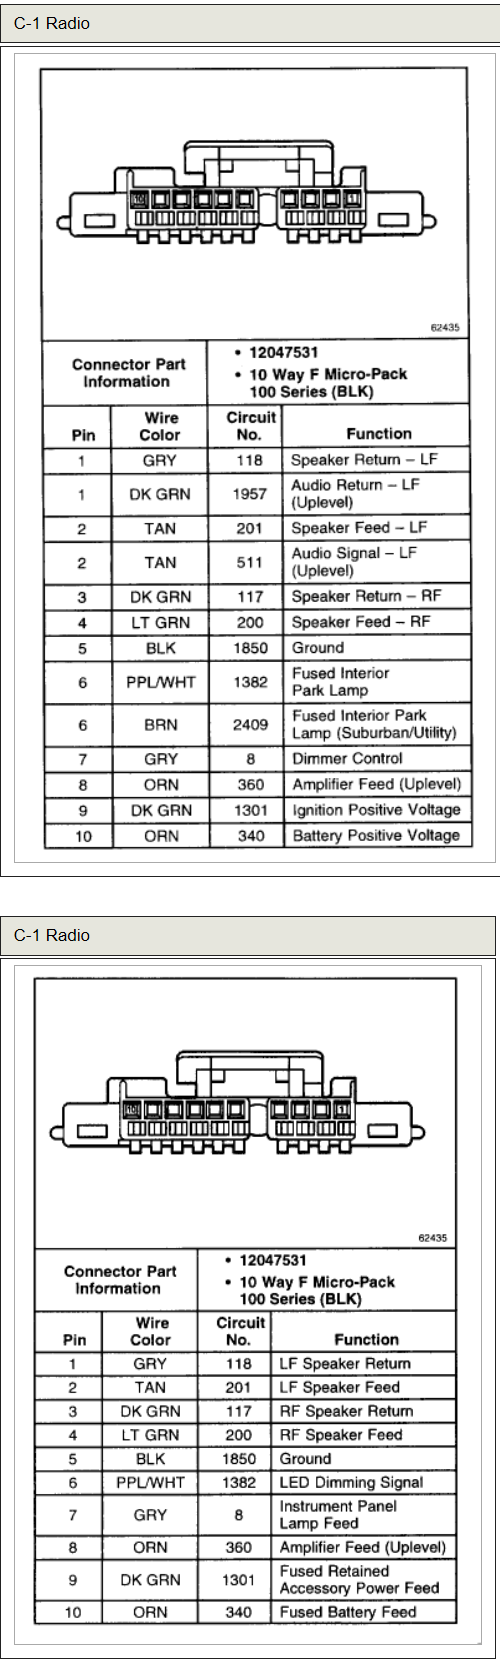 chevrolet car radio stereo audio wiring diagram autoradio connector rh tehnomagazin com 2005 Trailblazer Stereo Wiring Diagram 2004 chevy suburban radio wiring diagram